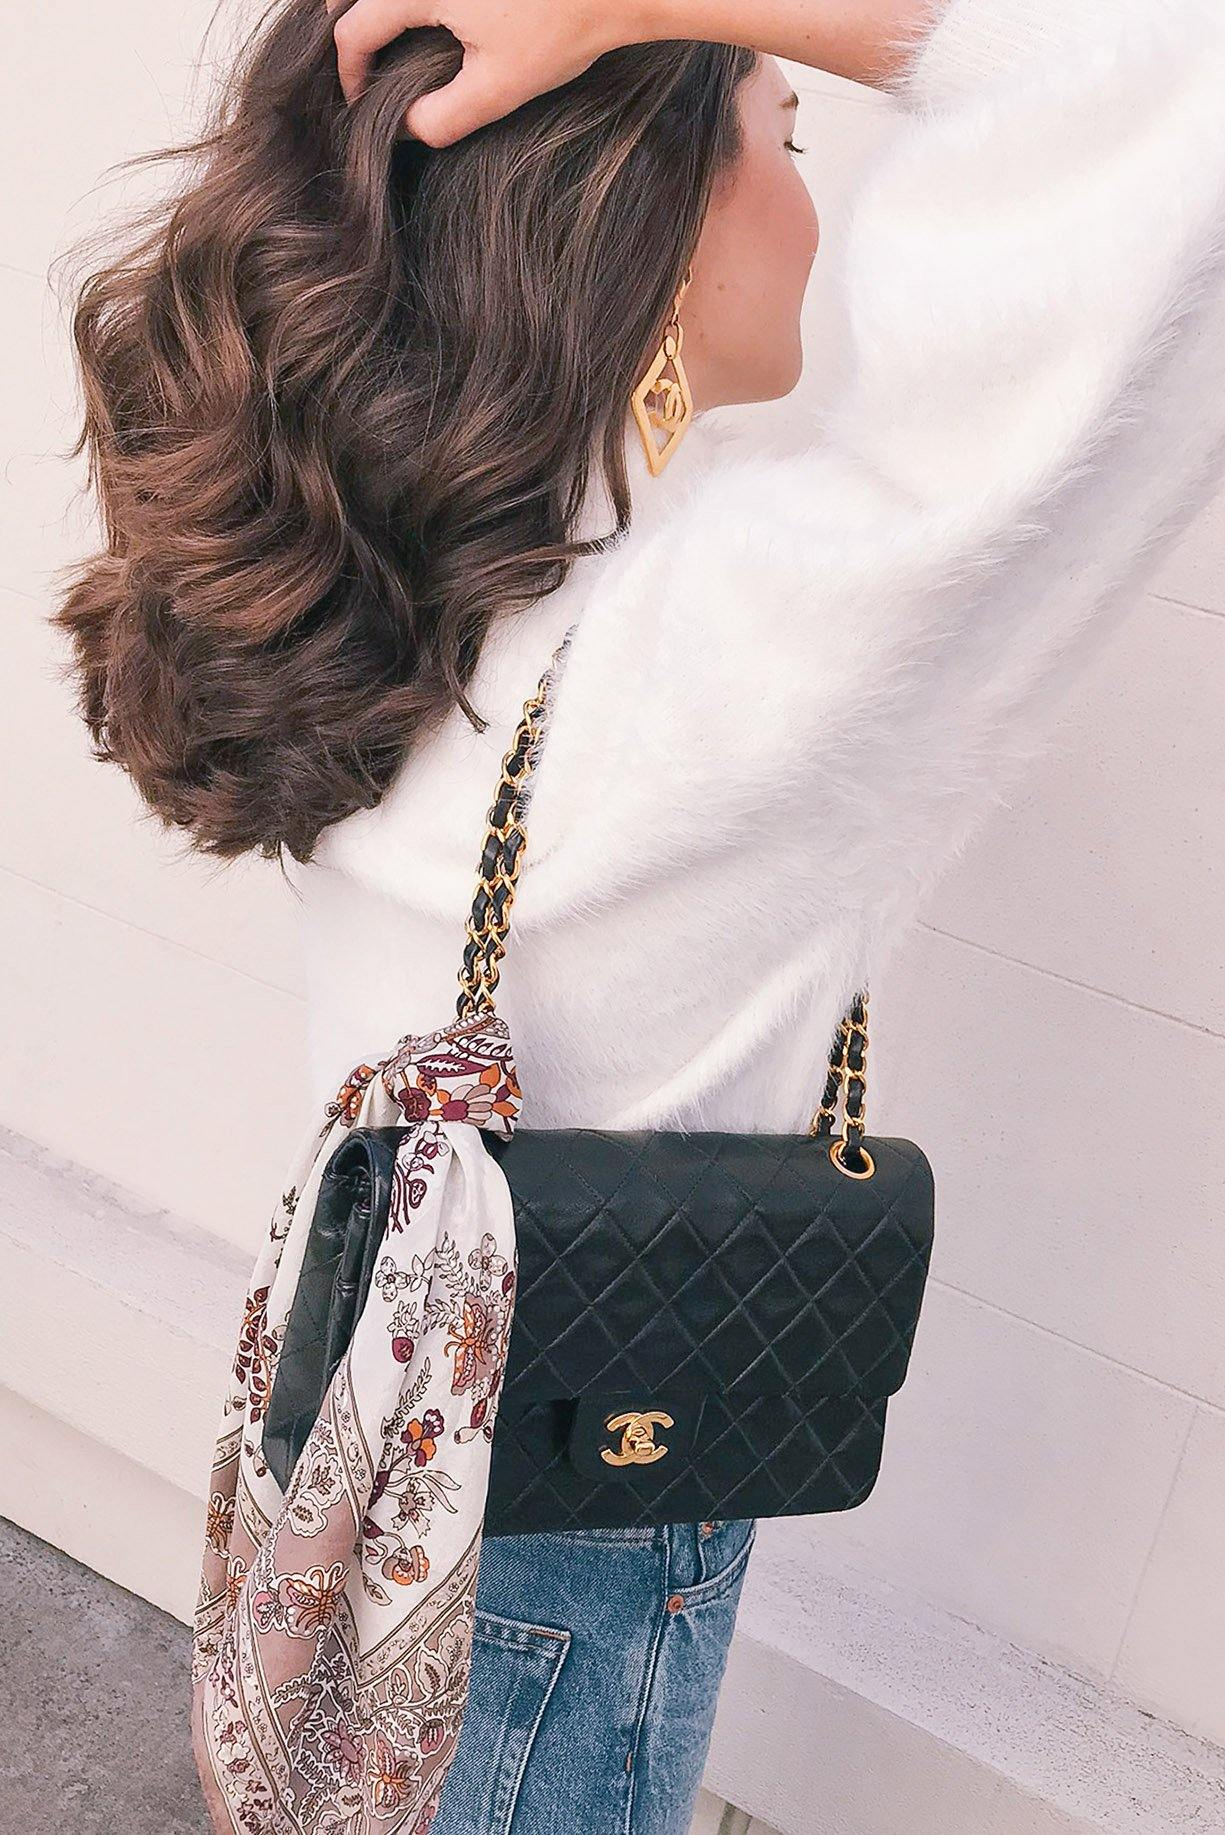 Chanel 2.55 Classic Flap Bag